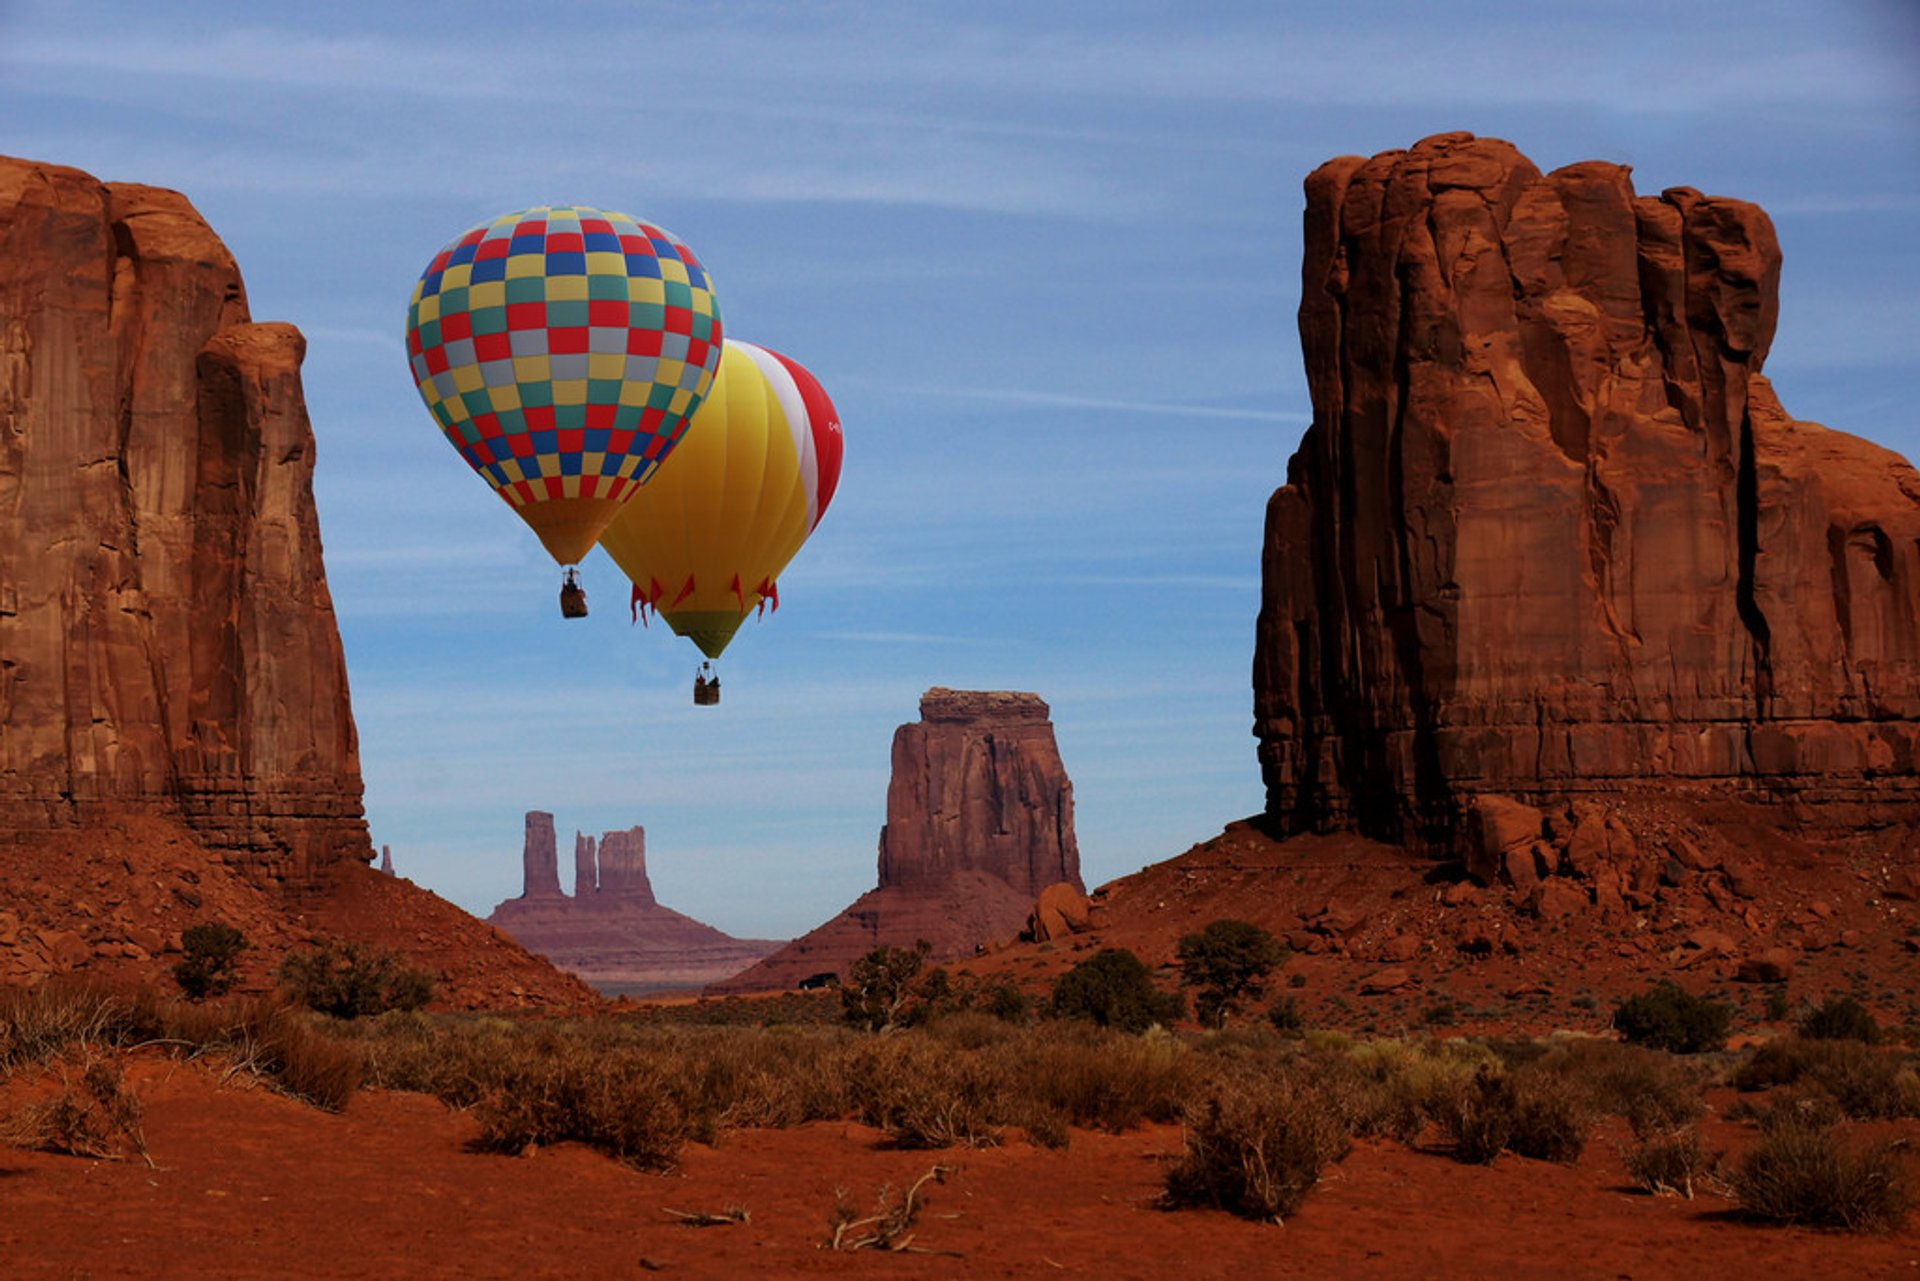 Ballooning over Monument Valley in Utah 2020 - Best Time